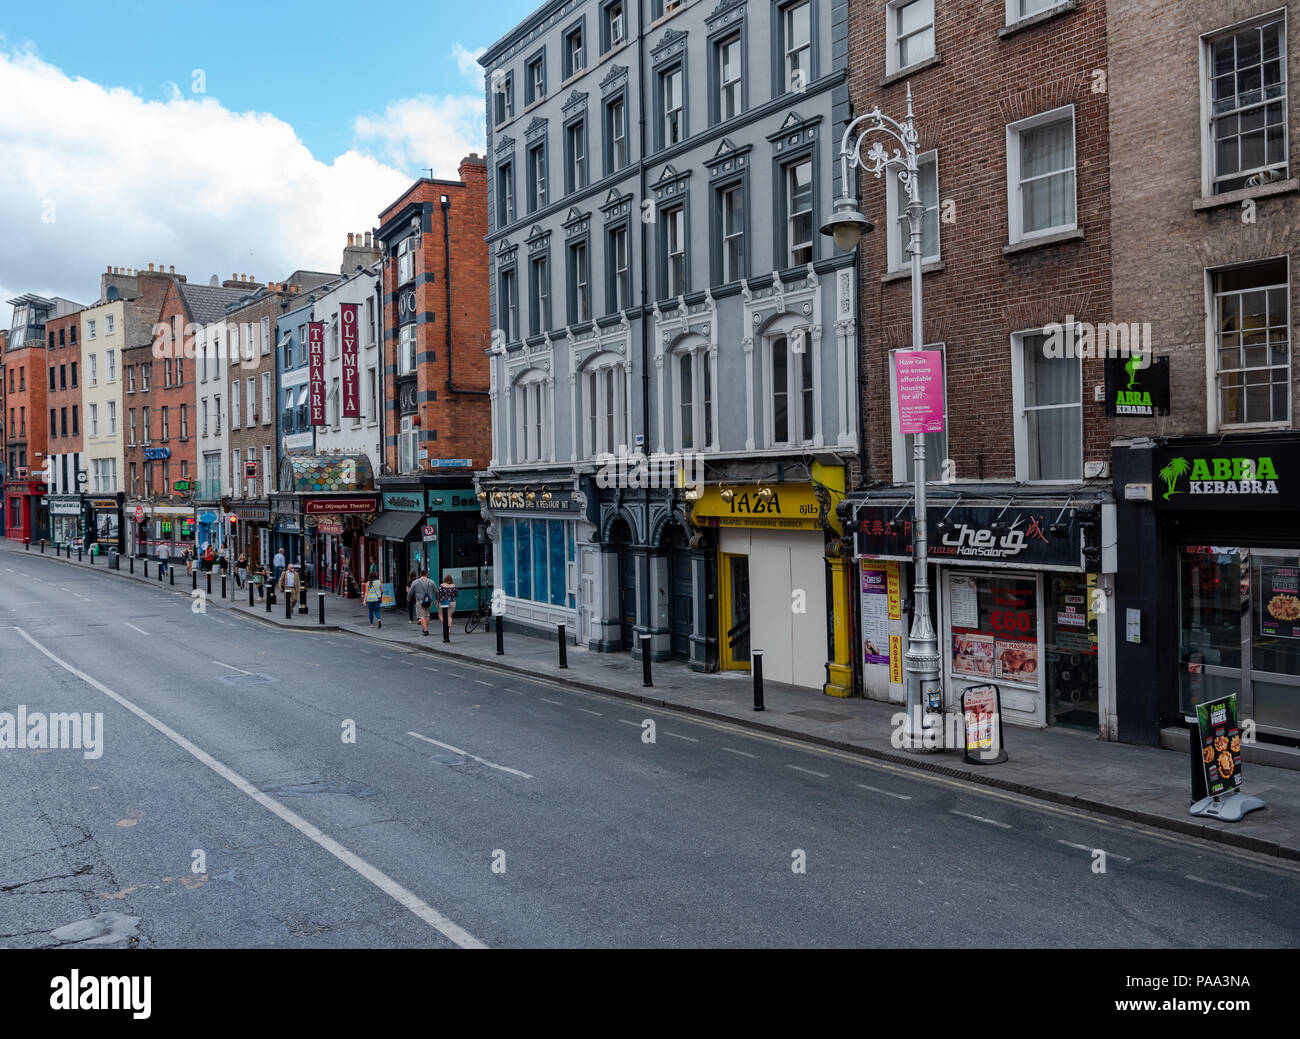 A row of flats, shops and stores in Dublin on a summer morning. - Stock Image